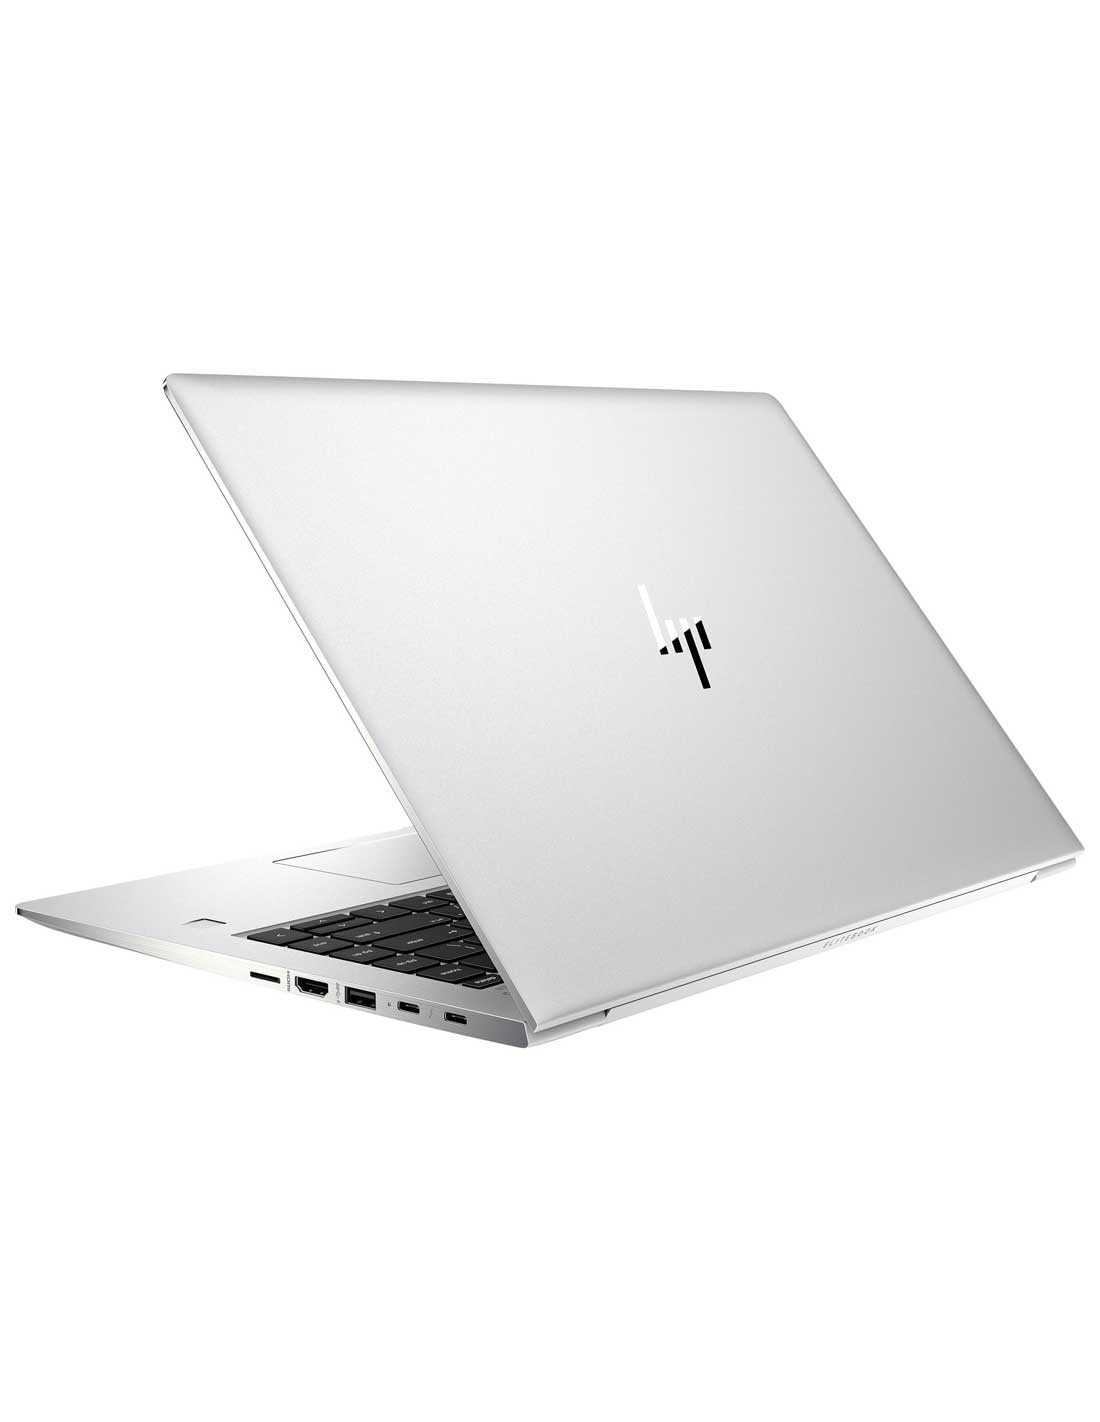 HP EliteBook 1040 G4 Notebook 16GB photos and images in Dubai computer store